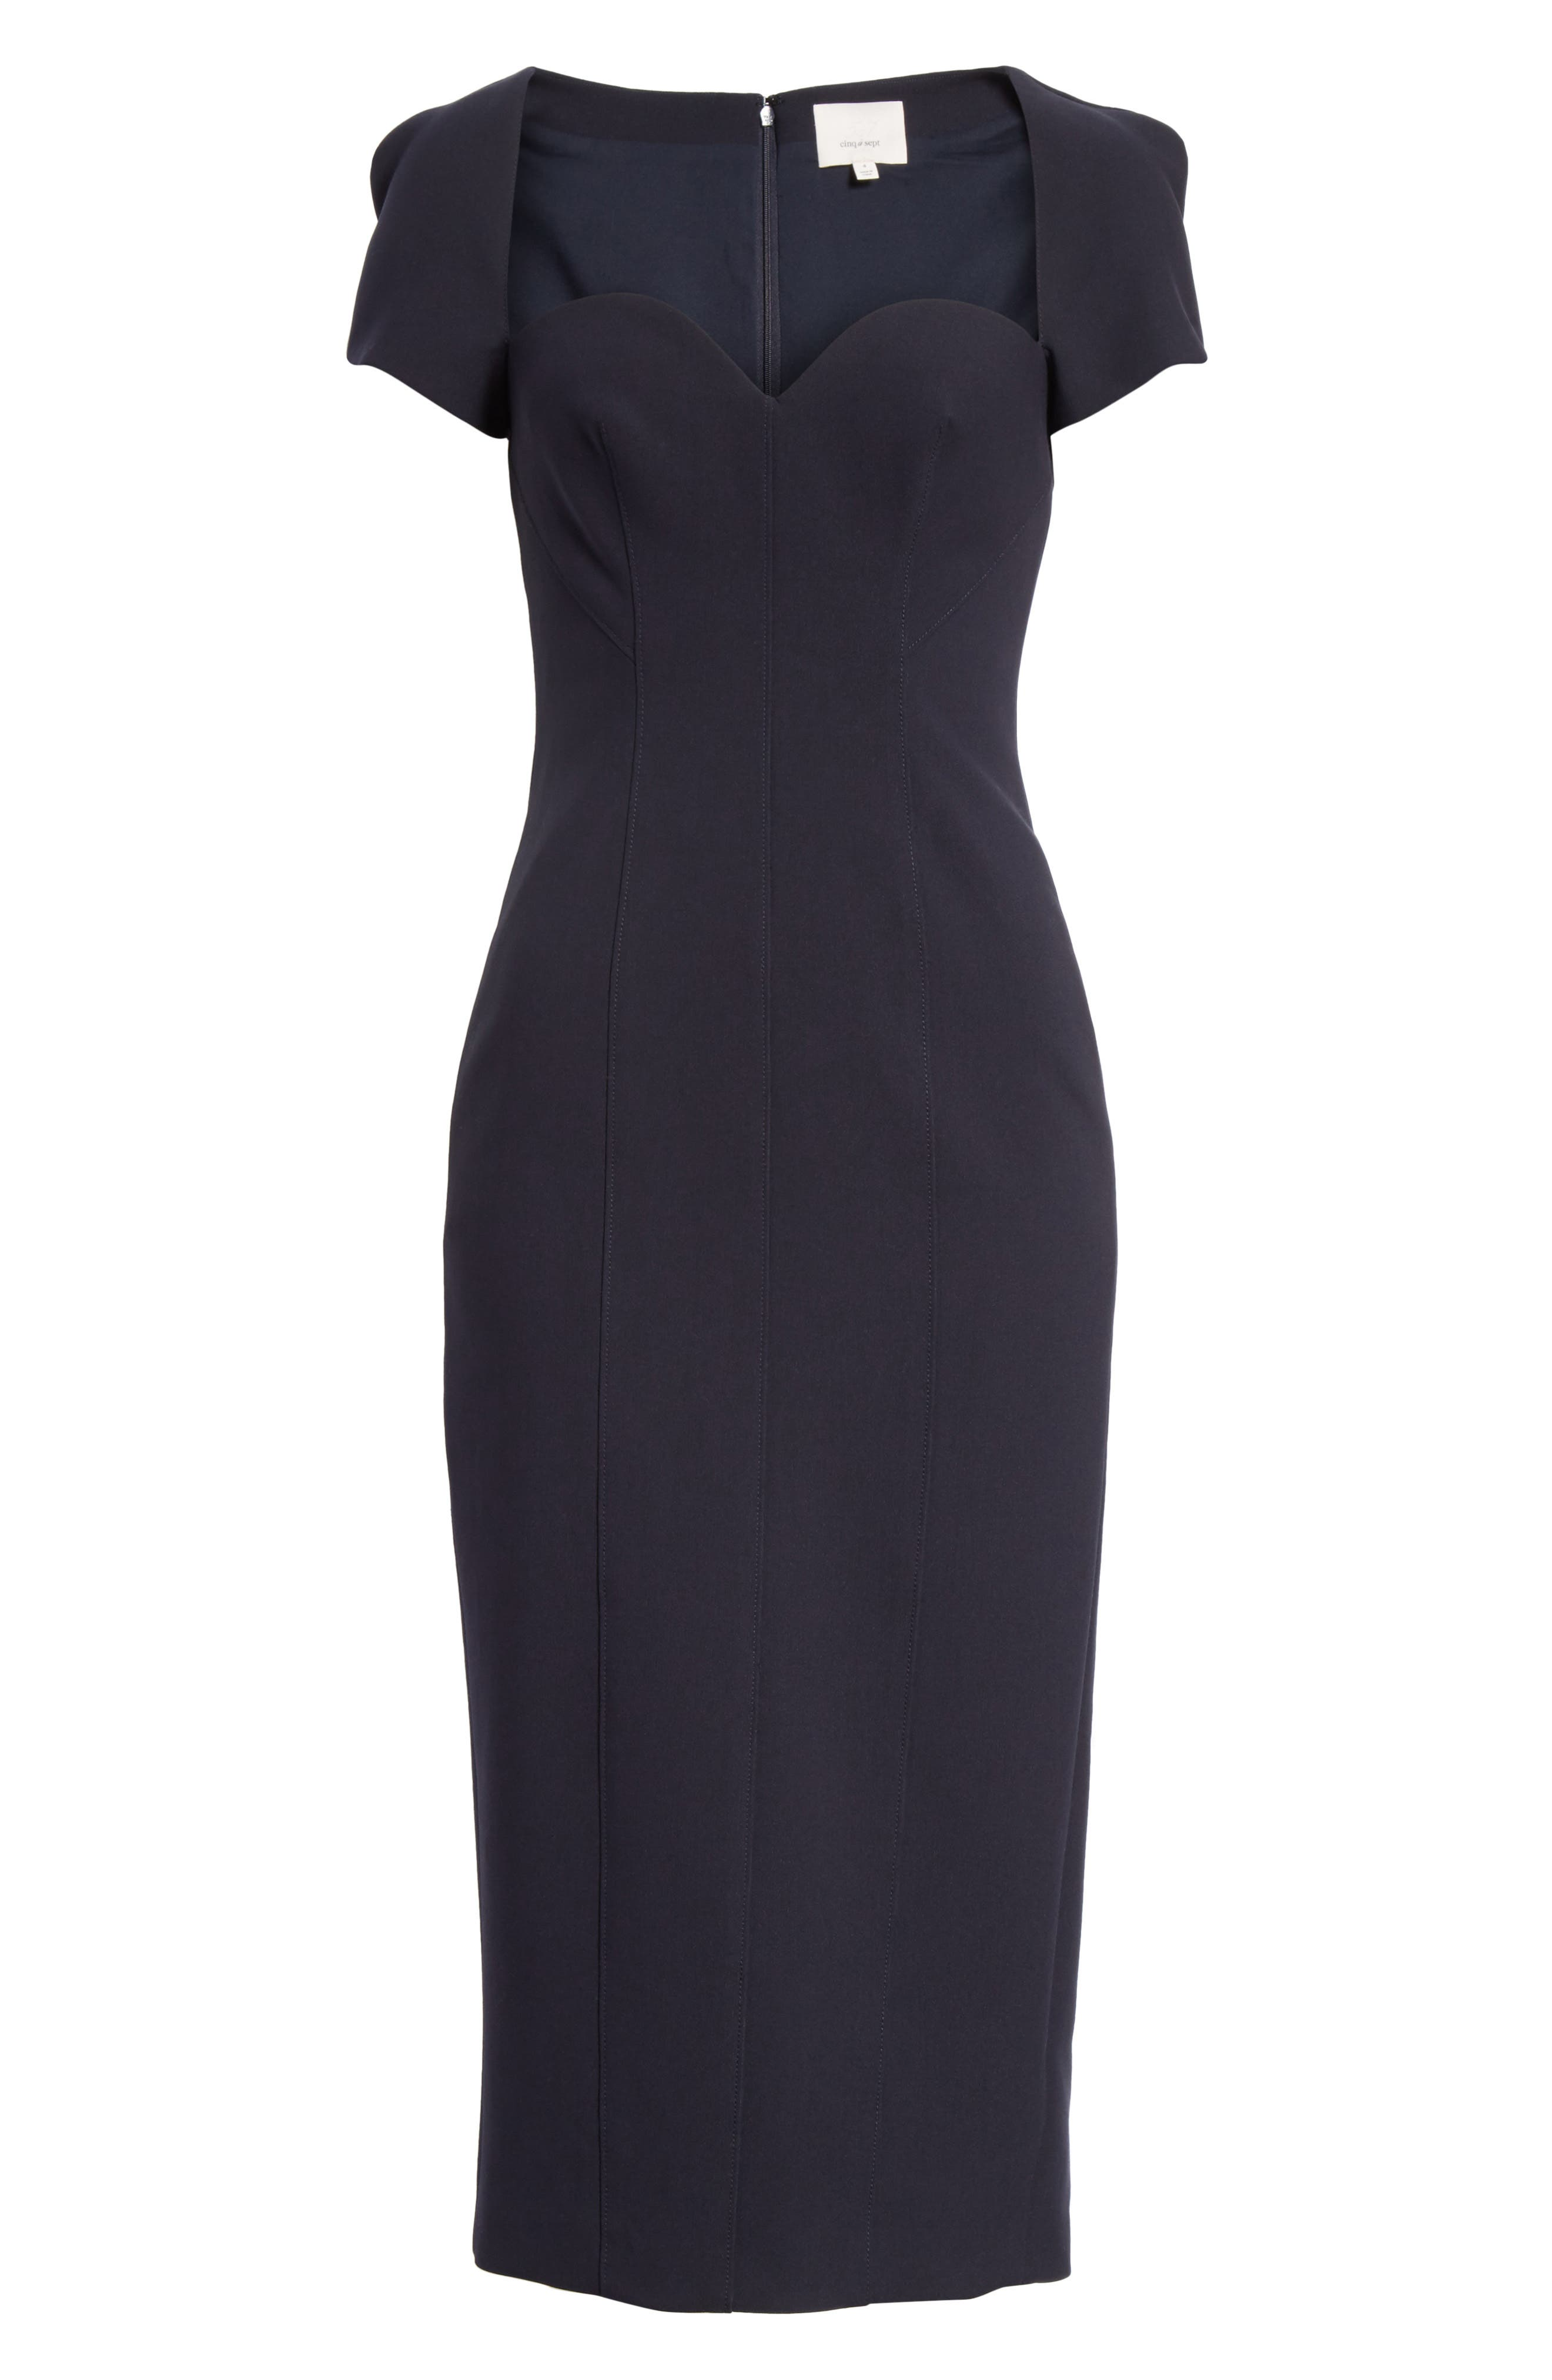 Gianna Sweetheart Neck Sheath Dress,                             Alternate thumbnail 6, color,                             410